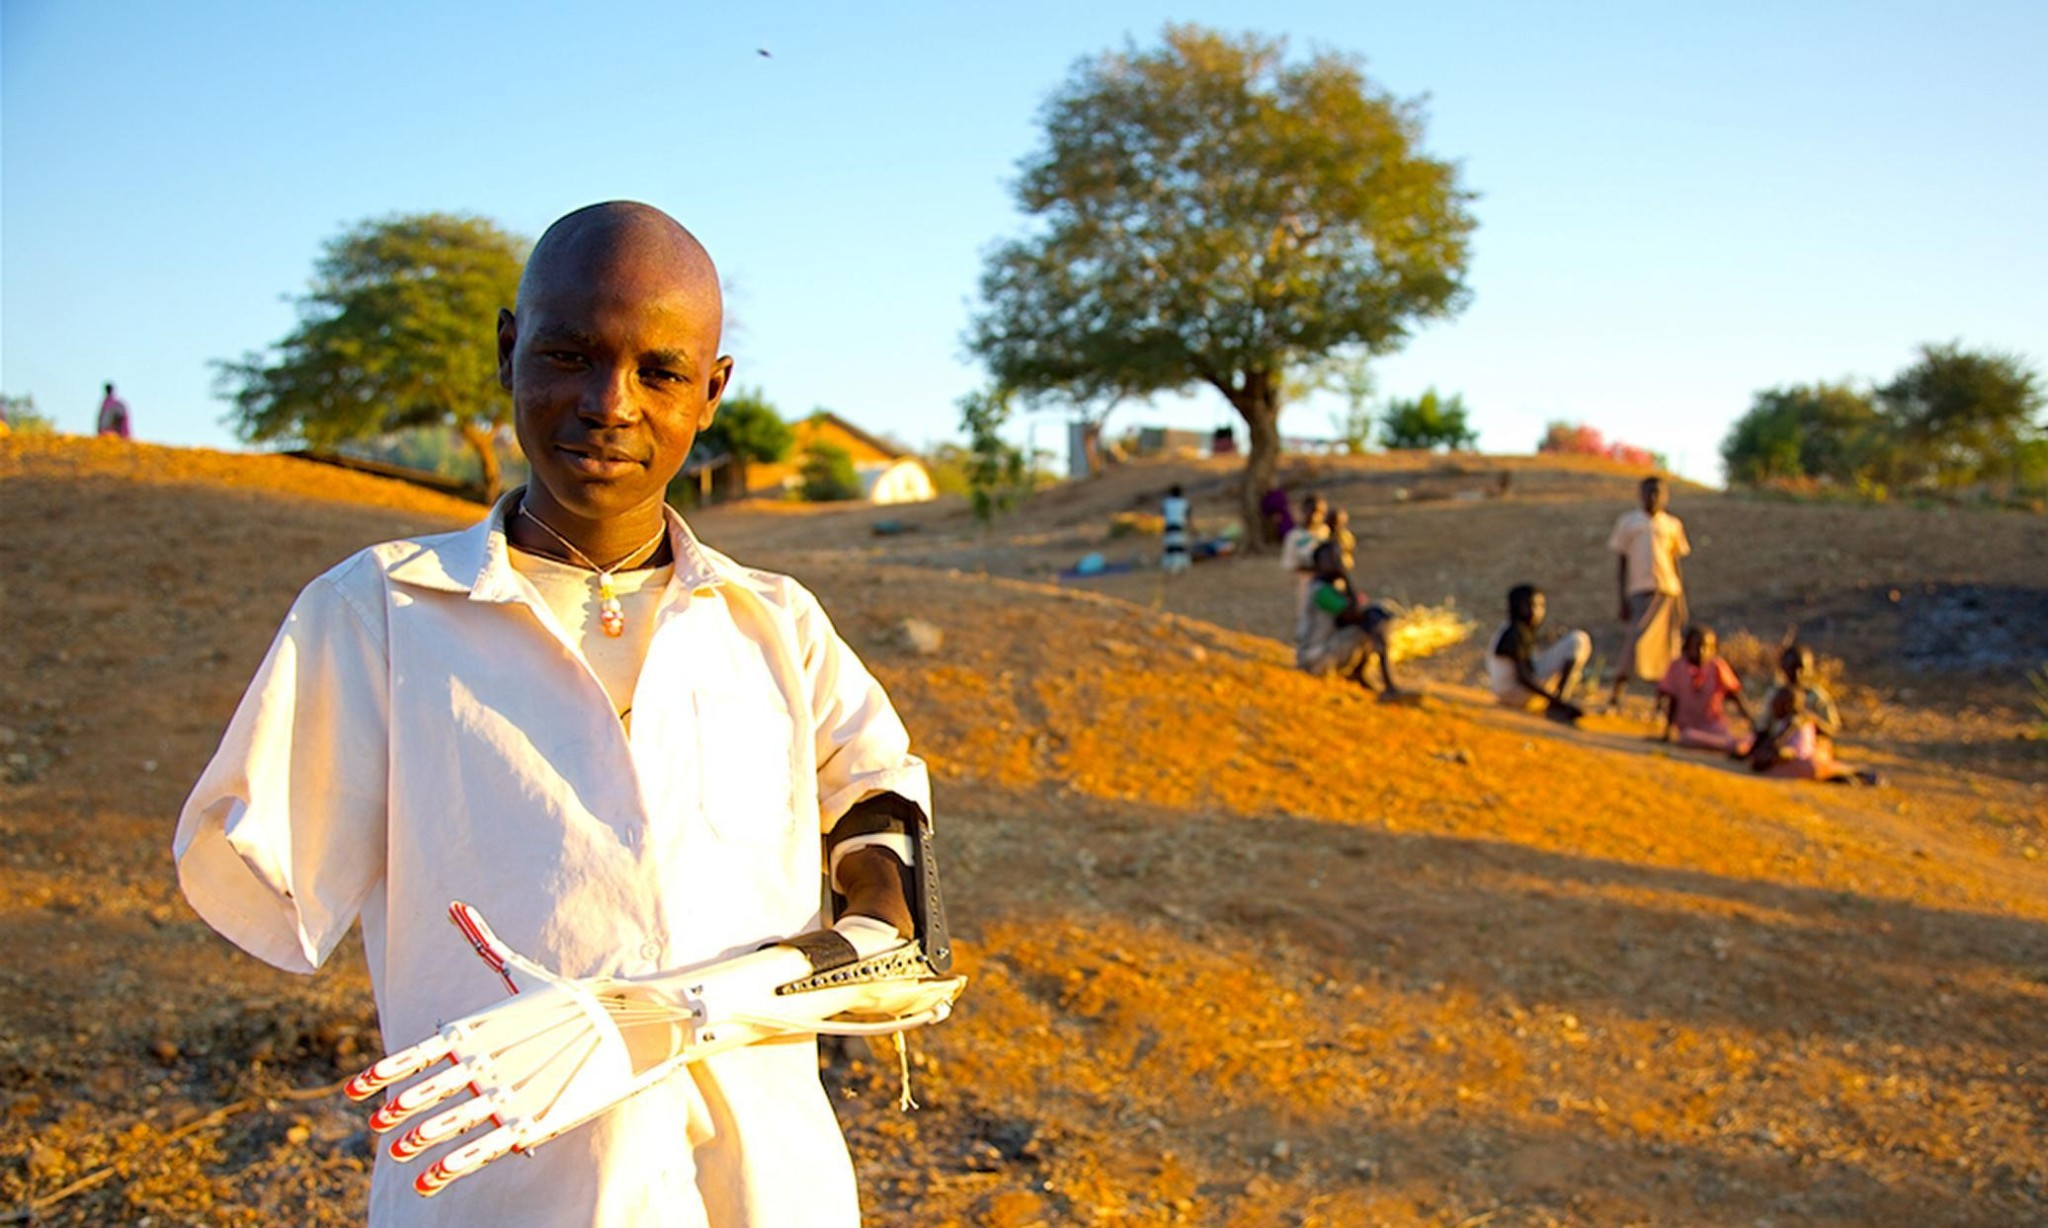 3D-printed prosthetic limbs: the next revolution in medicine